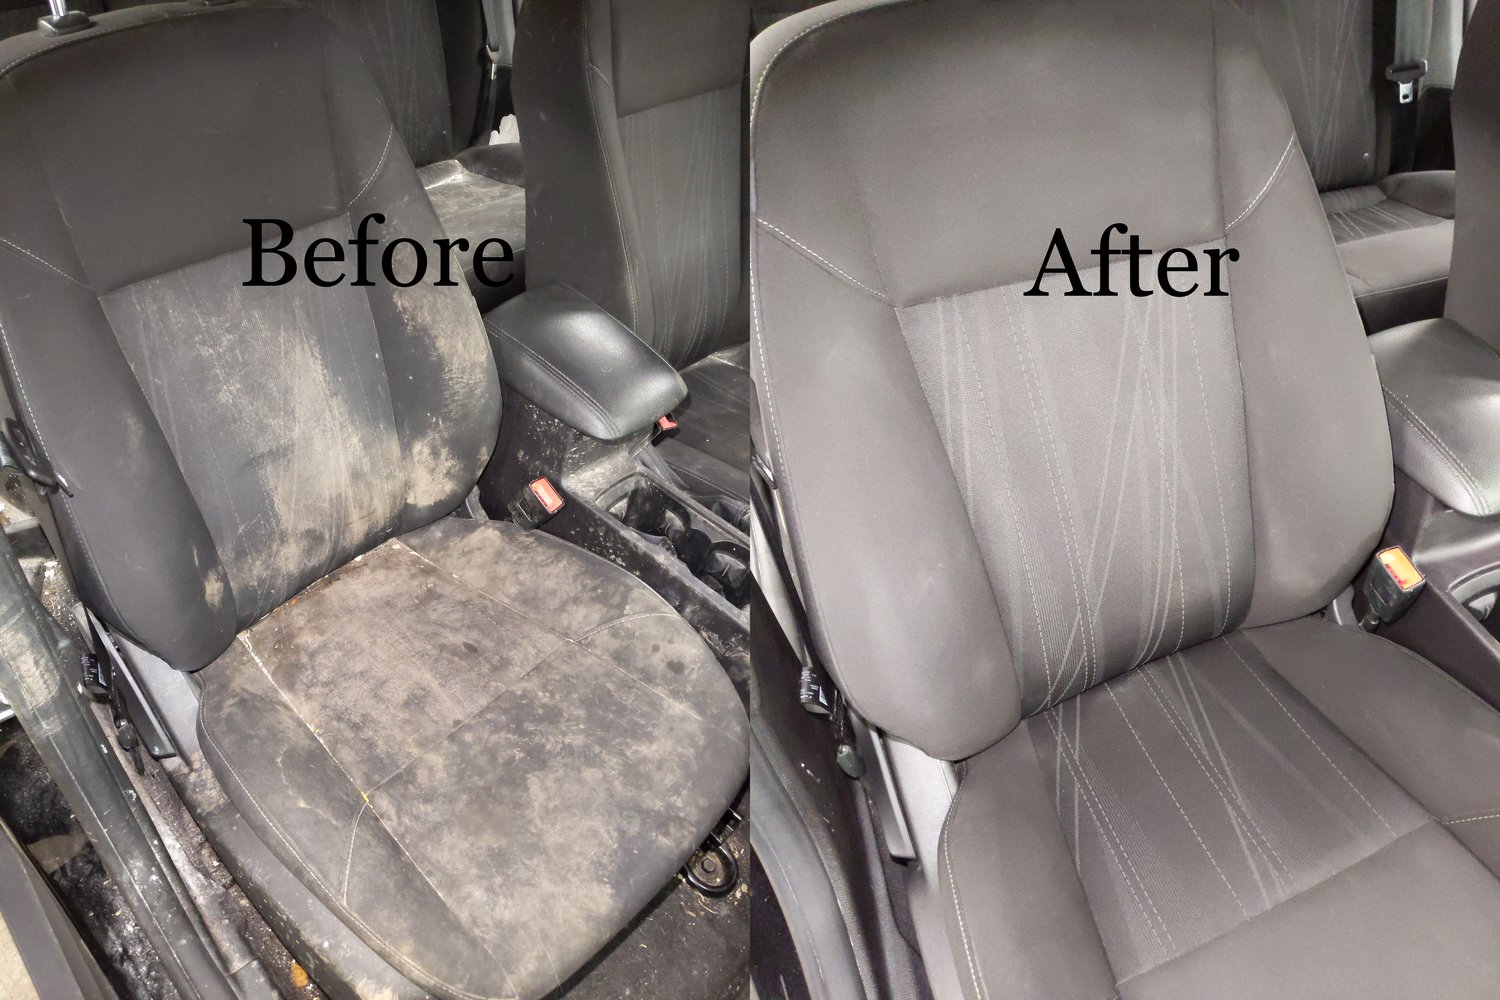 Mobile Car Detailing Winston Salem Nc The Best Way To Clean Car Upholstery Remove Stains Car Detailing Guide